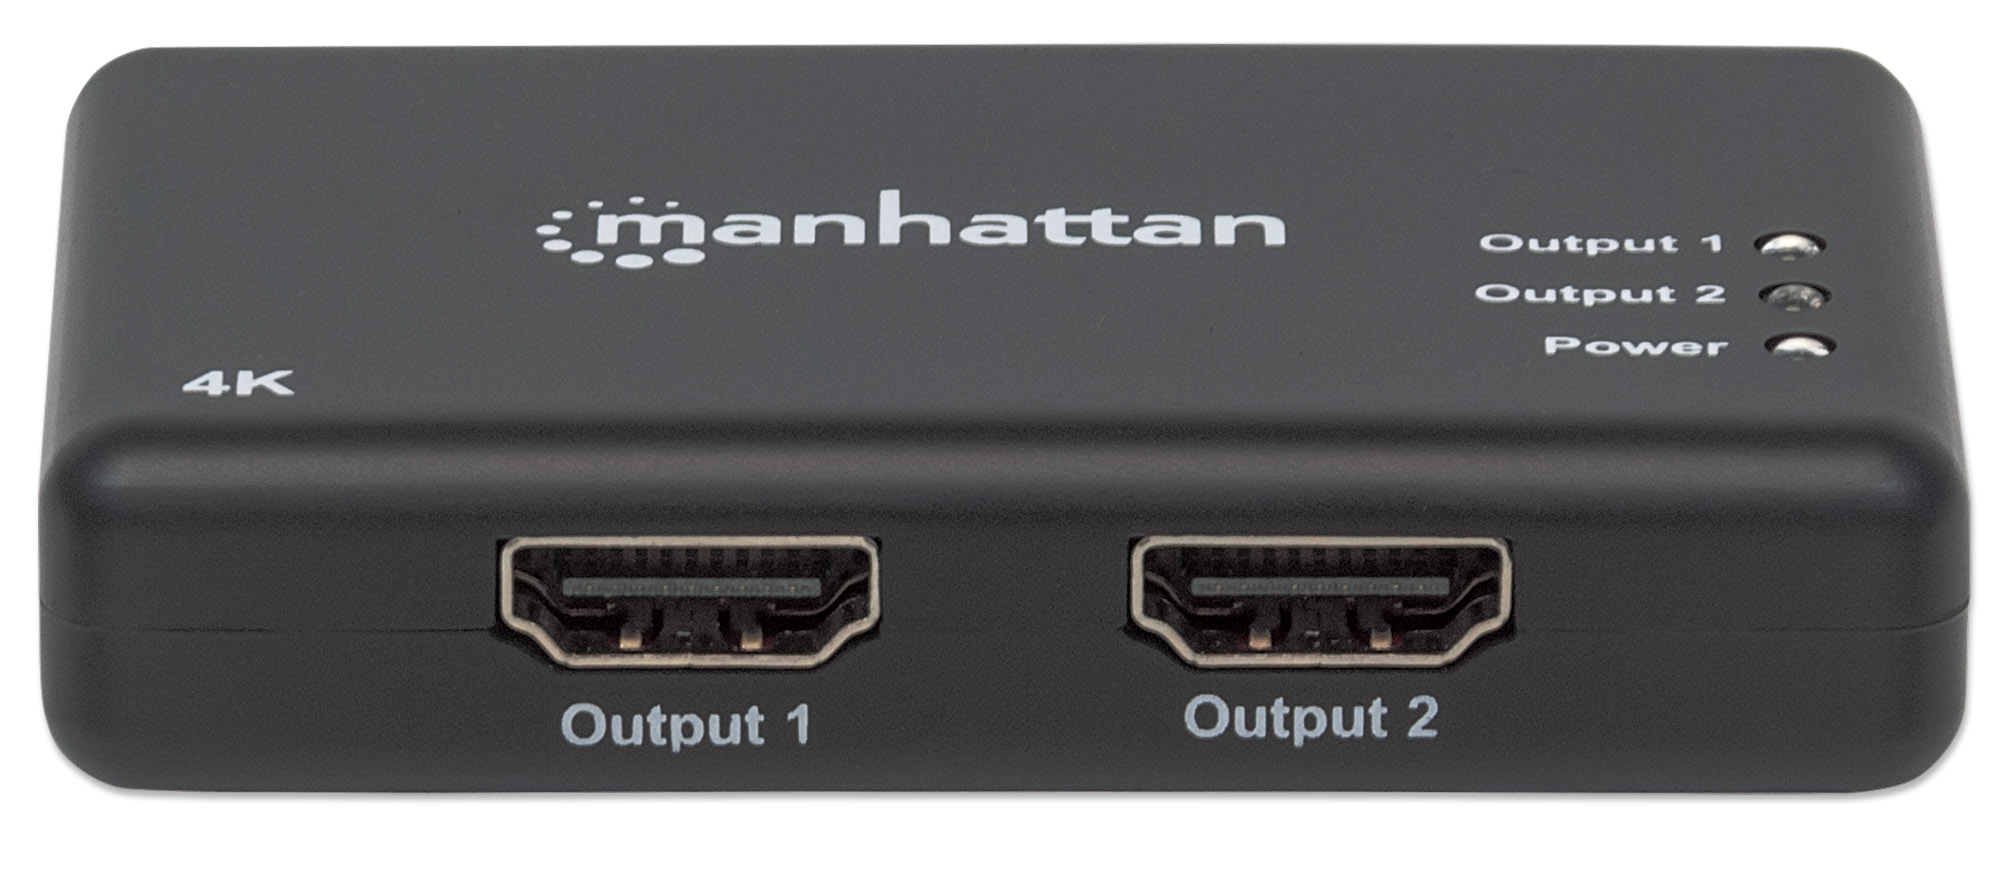 4K 2-Port HDMI Splitter